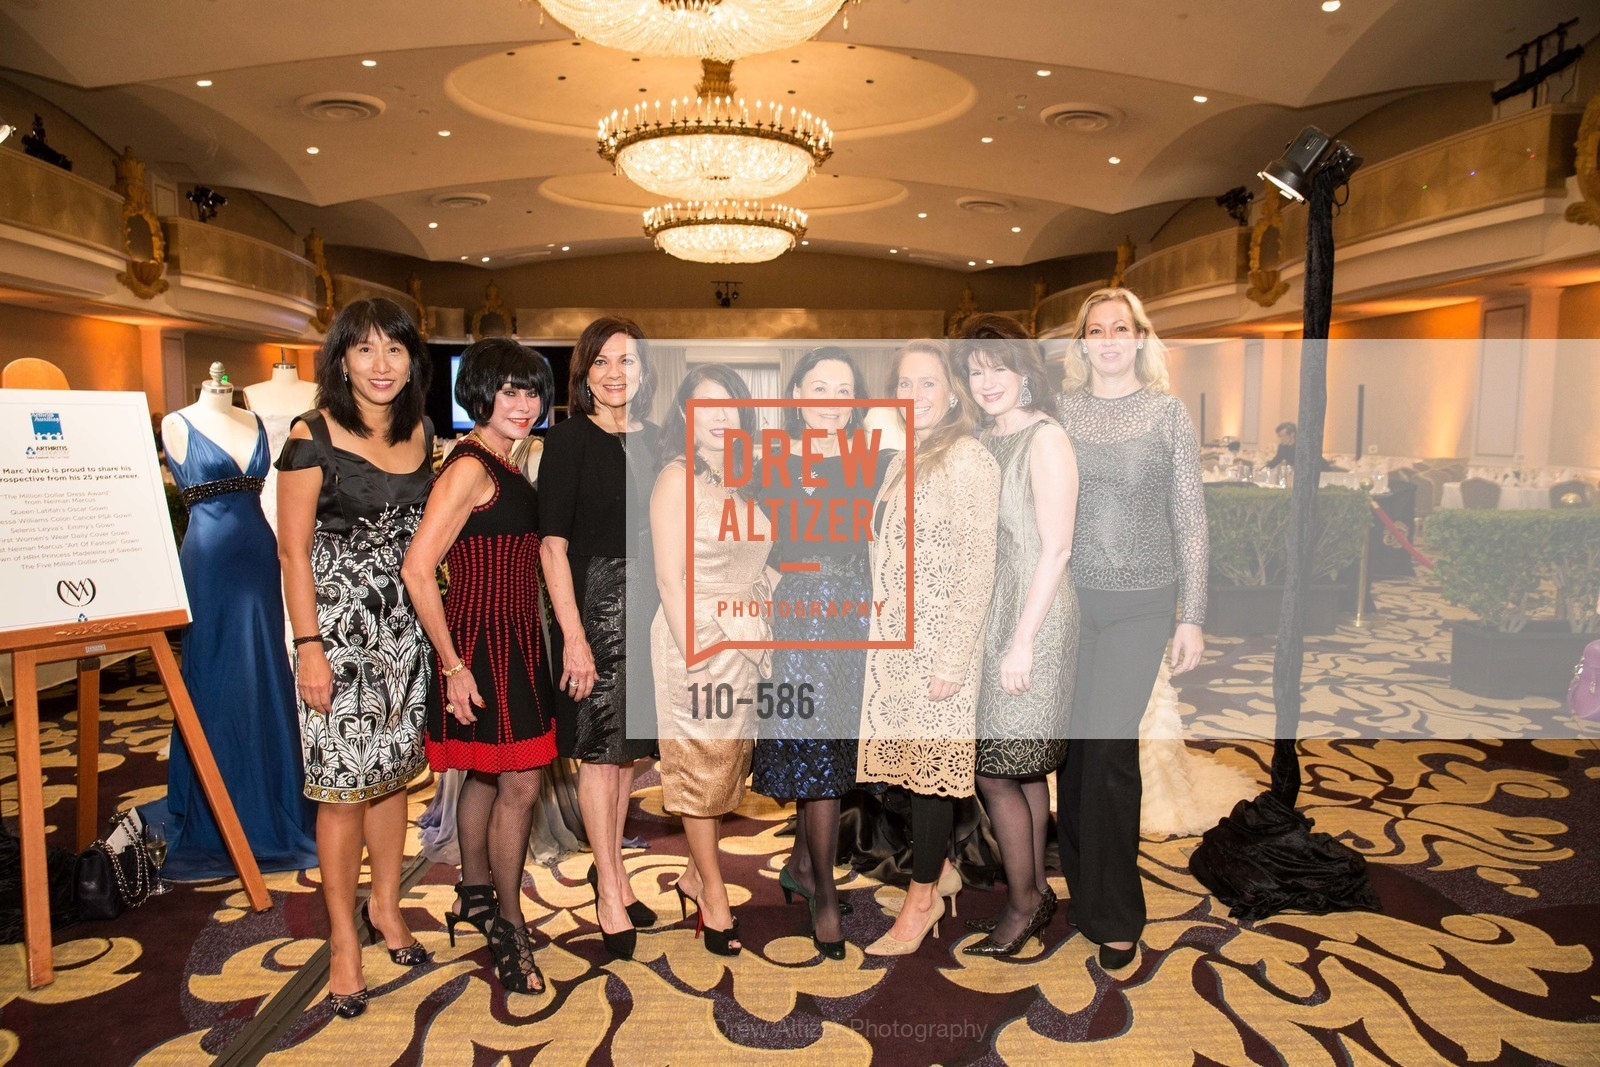 Sharon Juang, Marilyn Cabak, Pamela Culp, Sharon Seto, Iris Chan, Elisabeth Thieriot, Elaine Mellis, Betsy Vobach, 2014 Bay Area ARTHRITIS AUXILLIARY Benefit & Fashion Show, US, October 1st, 2014,Drew Altizer, Drew Altizer Photography, full-service agency, private events, San Francisco photographer, photographer california